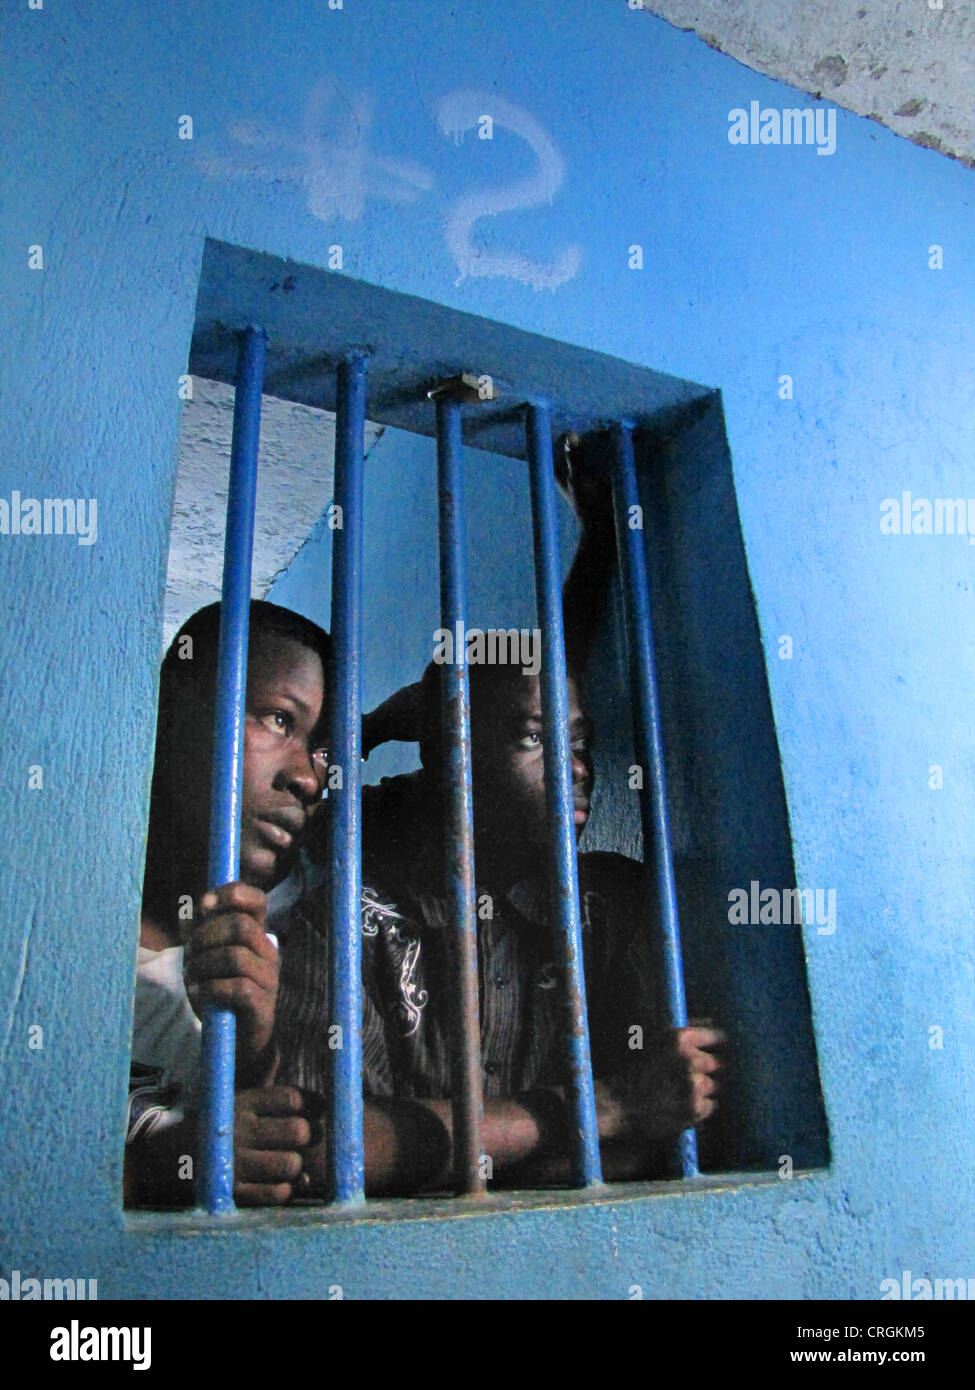 detainees behind bars of a window in run-down predetention cell (garde � vue) at police station, commissariat of - Stock Image